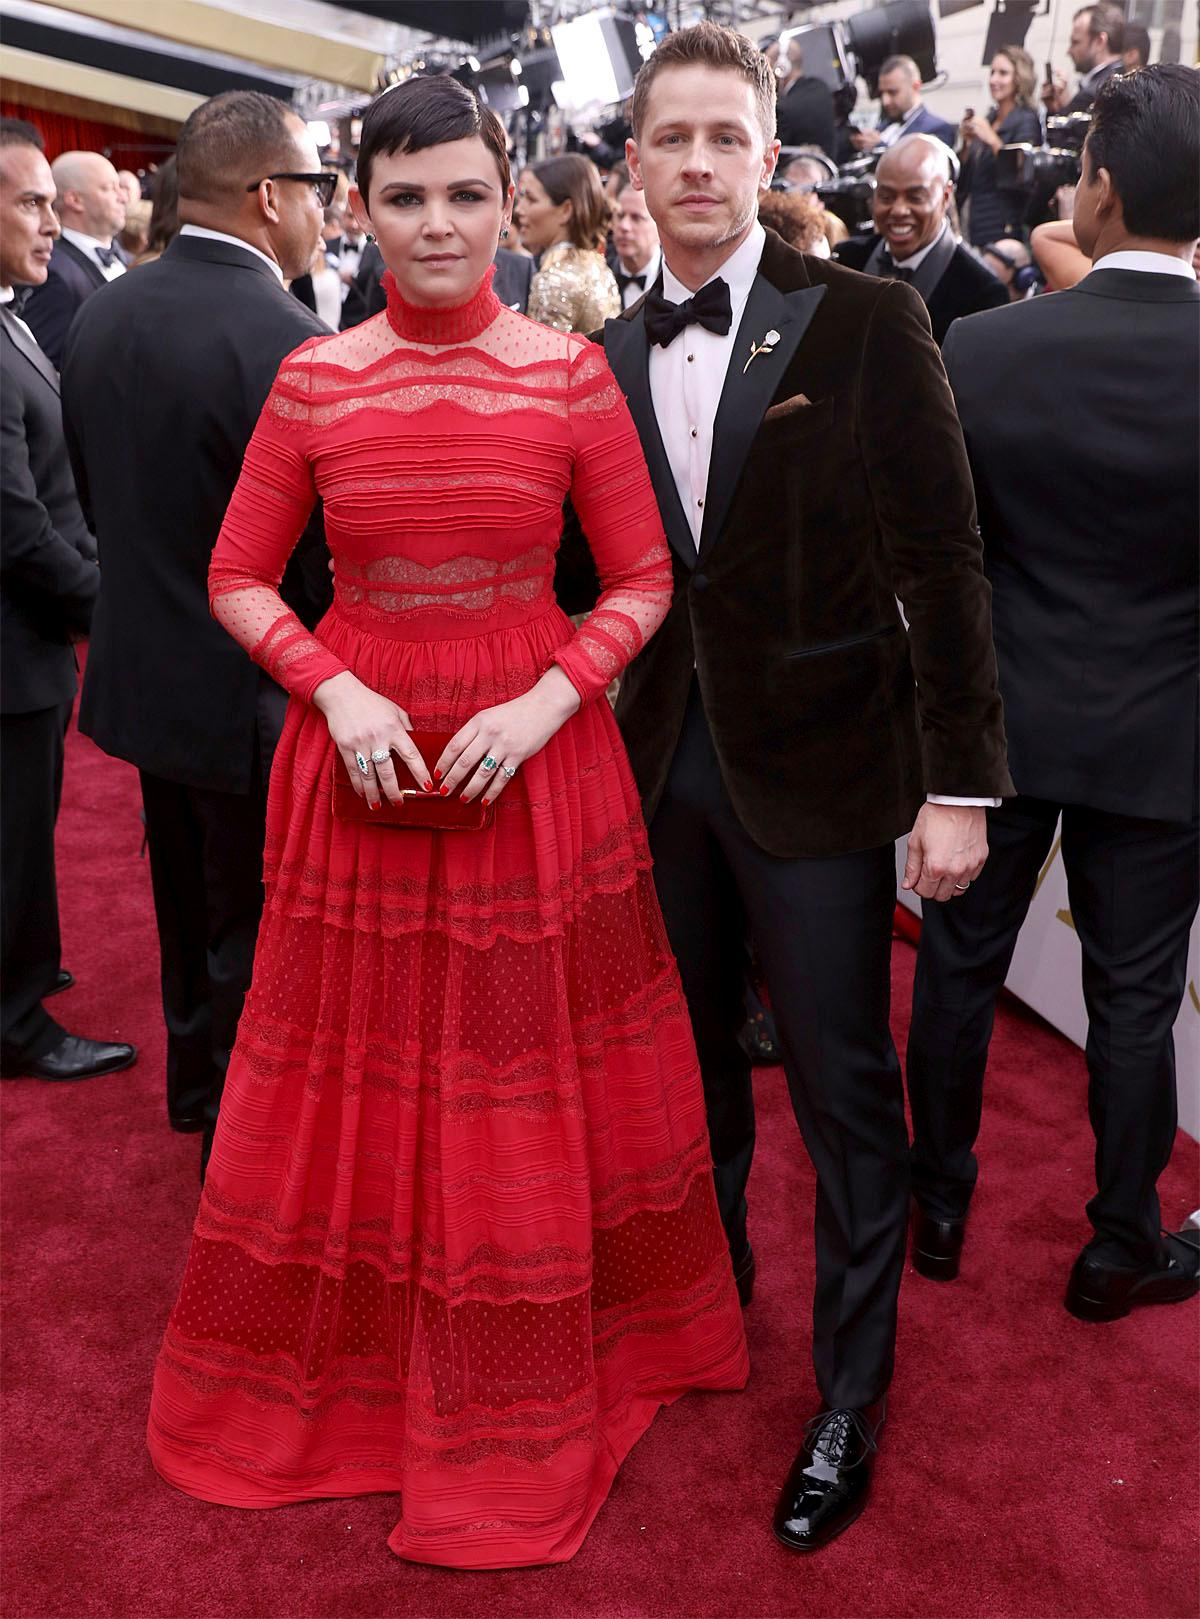 Ginnifer Goodwin, left, and Josh Dallas arrive at the Oscars on Sunday, Feb. 26, 2017, at the Dolby Theatre in Los Angeles. (Photo by Matt Sayles/Invision/AP)